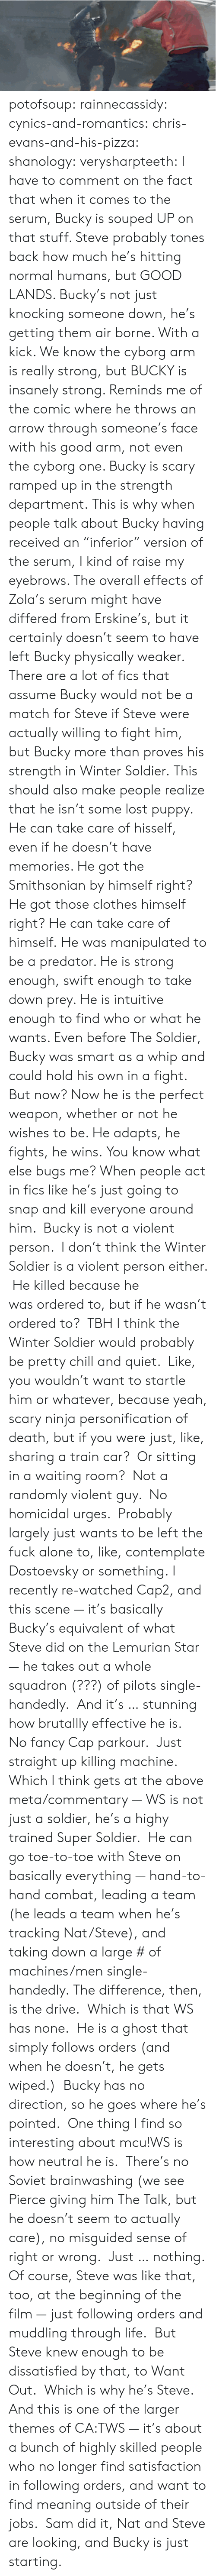 "Pilots: potofsoup: rainnecassidy:  cynics-and-romantics:  chris-evans-and-his-pizza:  shanology:  verysharpteeth:  I have to comment on the fact that when it comes to the serum, Bucky is souped UP on that stuff. Steve probably tones back how much he's hitting normal humans, but GOOD LANDS. Bucky's not just knocking someone down, he's getting them air borne. With a kick. We know the cyborg arm is really strong, but BUCKY is insanely strong. Reminds me of the comic where he throws an arrow through someone's face with his good arm, not even the cyborg one. Bucky is scary ramped up in the strength department.  This is why when people talk about Bucky having received an ""inferior"" version of the serum, I kind of raise my eyebrows. The overall effects of Zola's serum might have differed from Erskine's, but it certainly doesn't seem to have left Bucky physically weaker. There are a lot of fics that assume Bucky would not be a match for Steve if Steve were actually willing to fight him, but Bucky more than proves his strength in Winter Soldier.  This should also make people realize that he isn't some lost puppy. He can take care of hisself, even if he doesn't have memories. He got the Smithsonian by himself right? He got those clothes himself right? He can take care of himself.  He was manipulated to be a predator. He is strong enough, swift enough to take down prey. He is intuitive enough to find who or what he wants. Even before The Soldier, Bucky was smart as a whip and could hold his own in a fight. But now? Now he is the perfect weapon, whether or not he wishes to be. He adapts, he fights, he wins.  You know what else bugs me? When people act in fics like he's just going to snap and kill everyone around him.  Bucky is not a violent person.  I don't think the Winter Soldier is a violent person either.  He killed because he was ordered to, but if he wasn't ordered to?  TBH I think the Winter Soldier would probably be pretty chill and quiet.  Like, you wouldn't want to startle him or whatever, because yeah, scary ninja personification of death, but if you were just, like, sharing a train car?  Or sitting in a waiting room?  Not a randomly violent guy.  No homicidal urges.  Probably largely just wants to be left the fuck alone to, like, contemplate Dostoevsky or something.  I recently re-watched Cap2, and this scene — it's basically Bucky's equivalent of what Steve did on the Lemurian Star — he takes out a whole squadron (???) of pilots single-handedly.  And it's … stunning how brutallly effective he is.  No fancy Cap parkour.  Just straight up killing machine. Which I think gets at the above meta/commentary — WS is not just a soldier, he's a highy trained Super Soldier.  He can go toe-to-toe with Steve on basically everything — hand-to-hand combat, leading a team (he leads a team when he's tracking Nat/Steve), and taking down a large # of machines/men single-handedly. The difference, then, is the drive.  Which is that WS has none.  He is a ghost that simply follows orders (and when he doesn't, he gets wiped.)  Bucky has no direction, so he goes where he's pointed.  One thing I find so interesting about mcu!WS is how neutral he is.  There's no Soviet brainwashing (we see Pierce giving him The Talk, but he doesn't seem to actually care), no misguided sense of right or wrong.  Just … nothing. Of course, Steve was like that, too, at the beginning of the film — just following orders and muddling through life.  But Steve knew enough to be dissatisfied by that, to Want Out.  Which is why he's Steve. And this is one of the larger themes of CA:TWS — it's about a bunch of highly skilled people who no longer find satisfaction in following orders, and want to find meaning outside of their jobs.  Sam did it, Nat and Steve are looking, and Bucky is just starting."